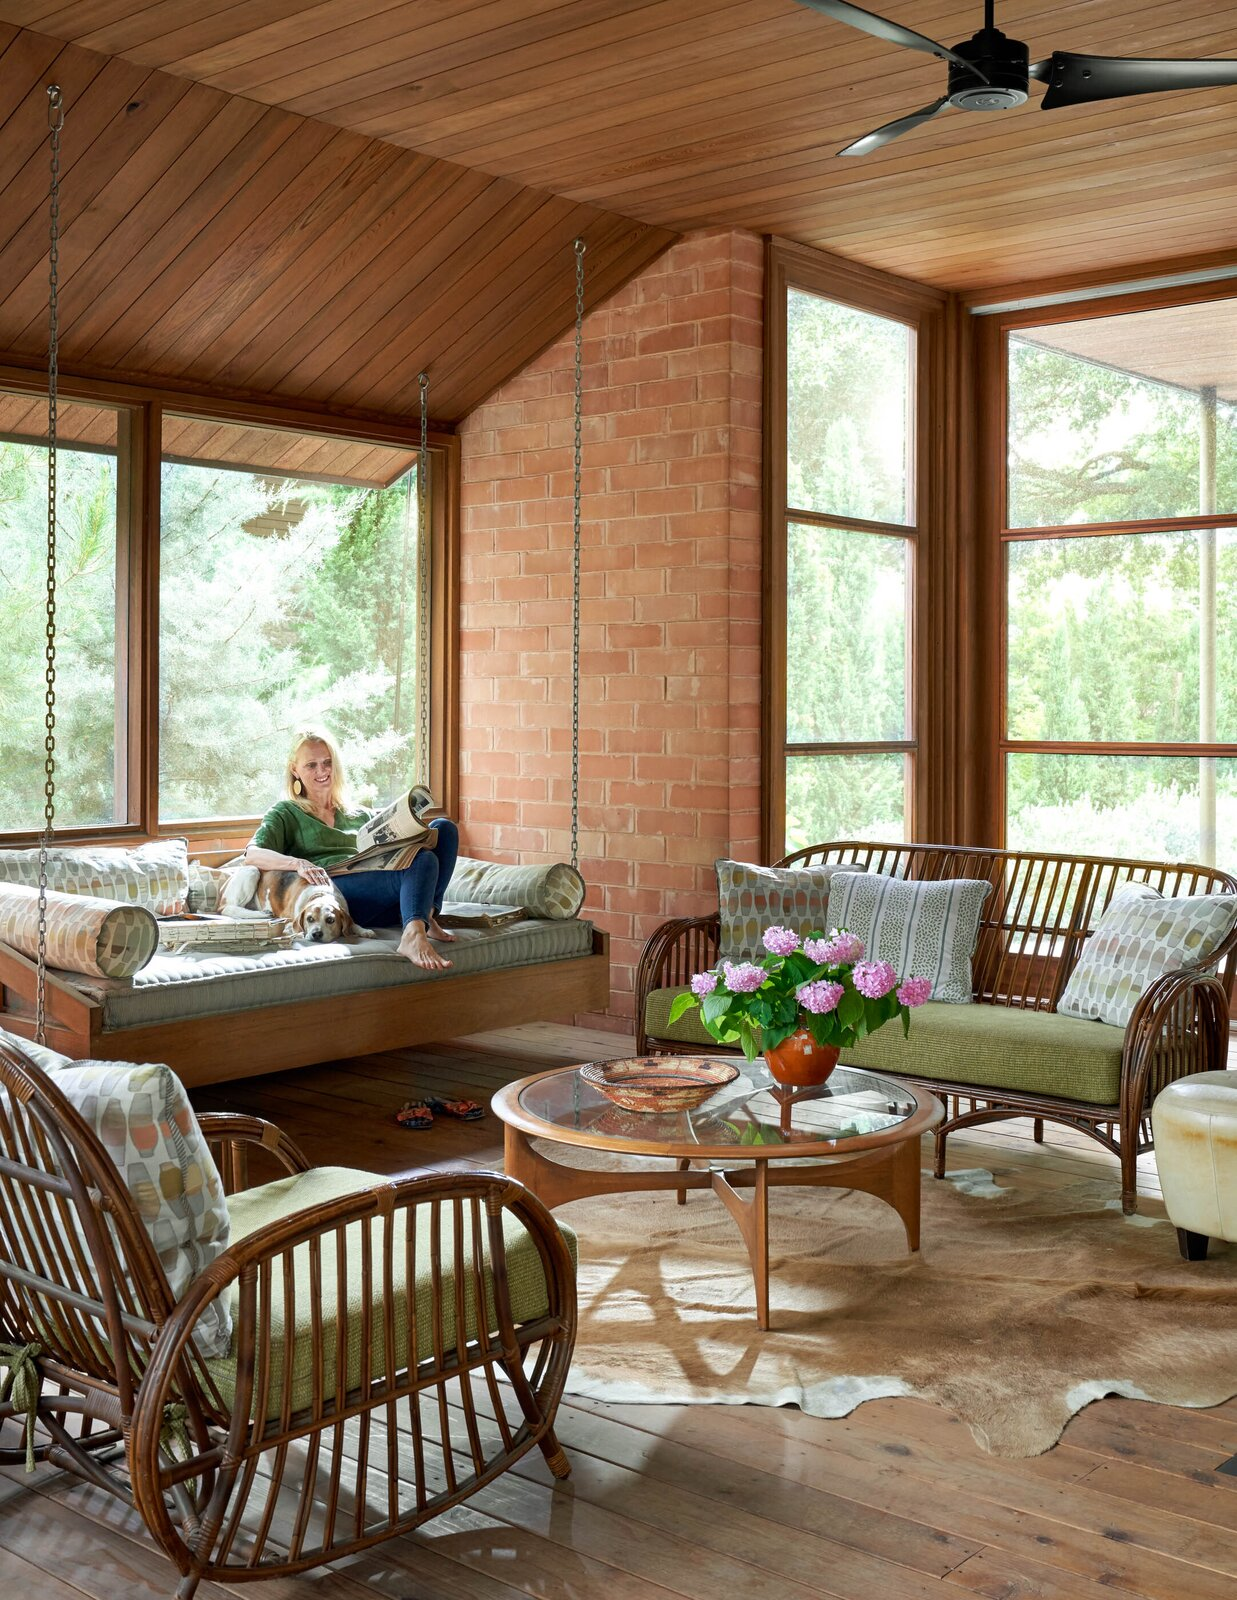 Screened-in porch at the River House 2 by Bentley Tibbs Architect